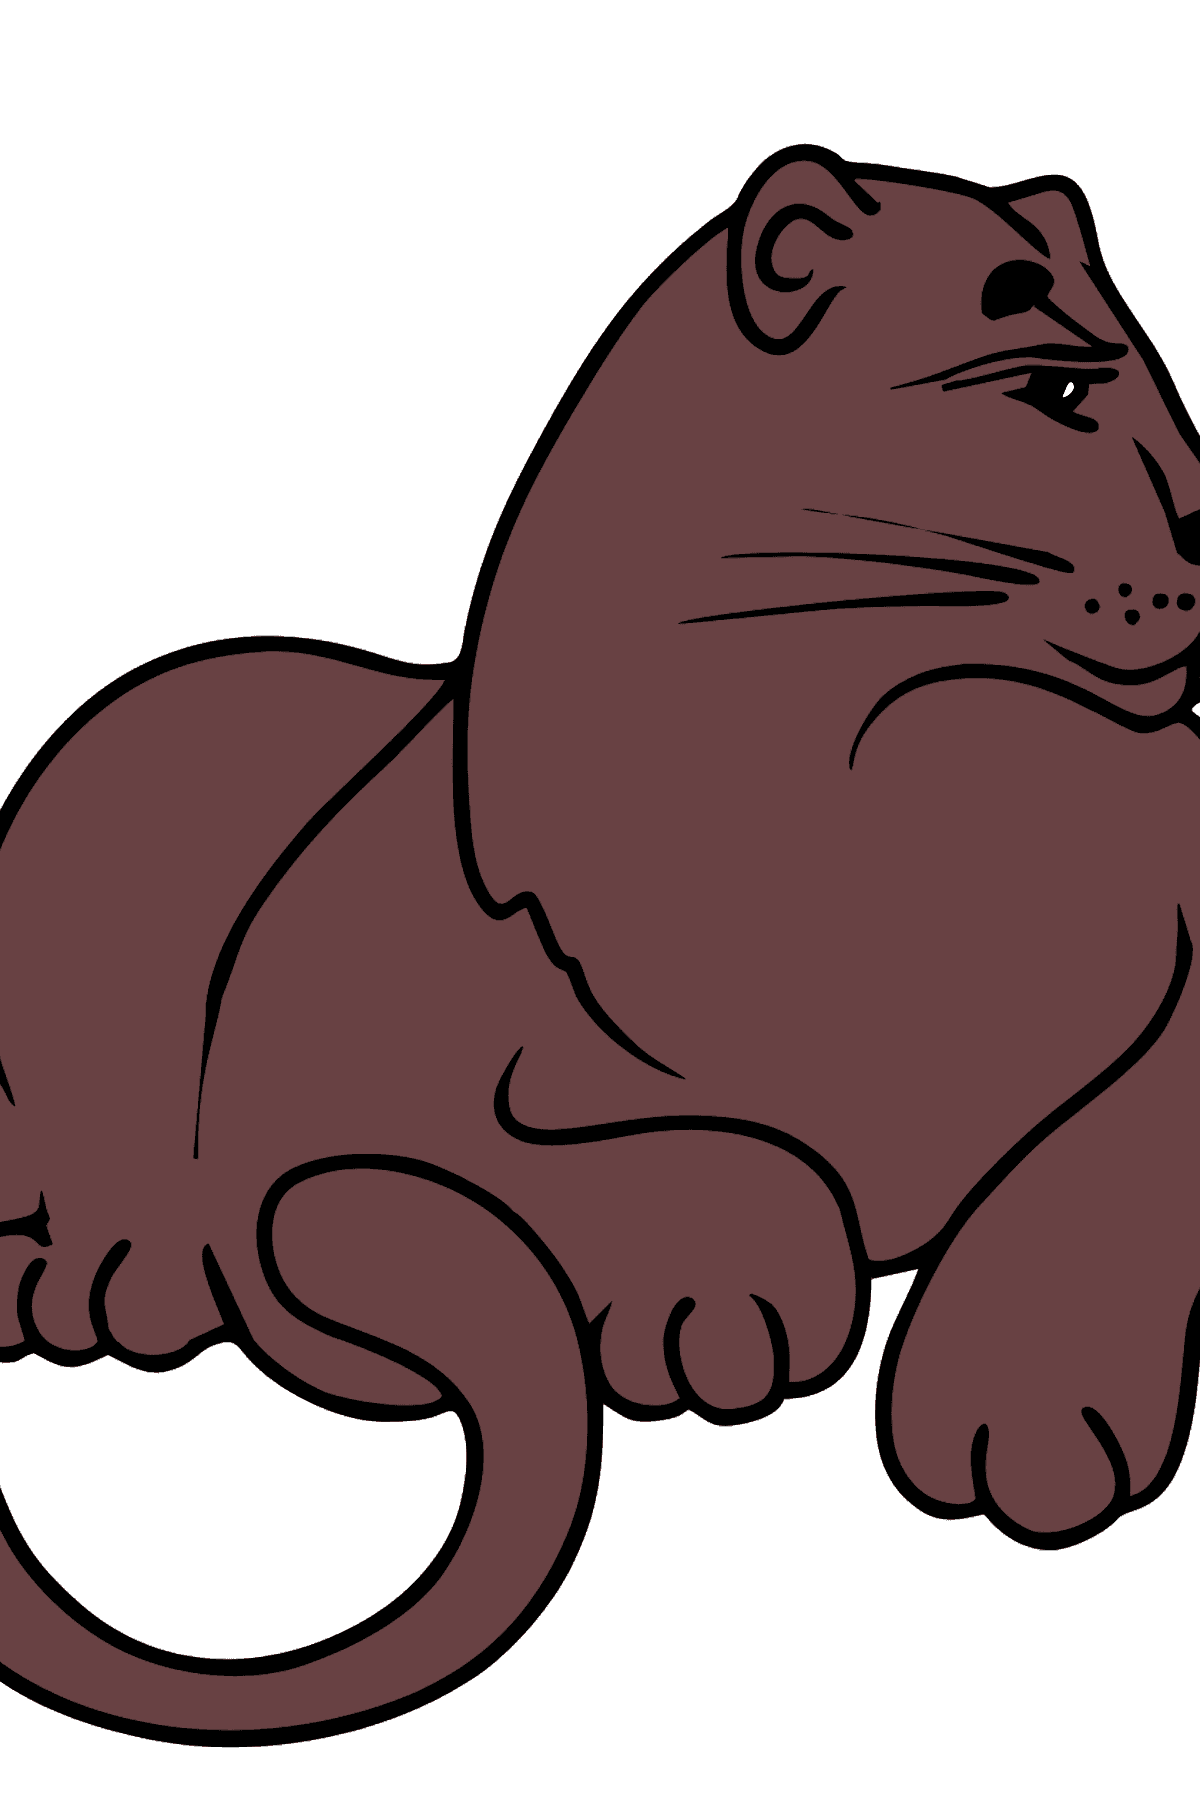 Panther coloring page - Coloring Pages for Kids